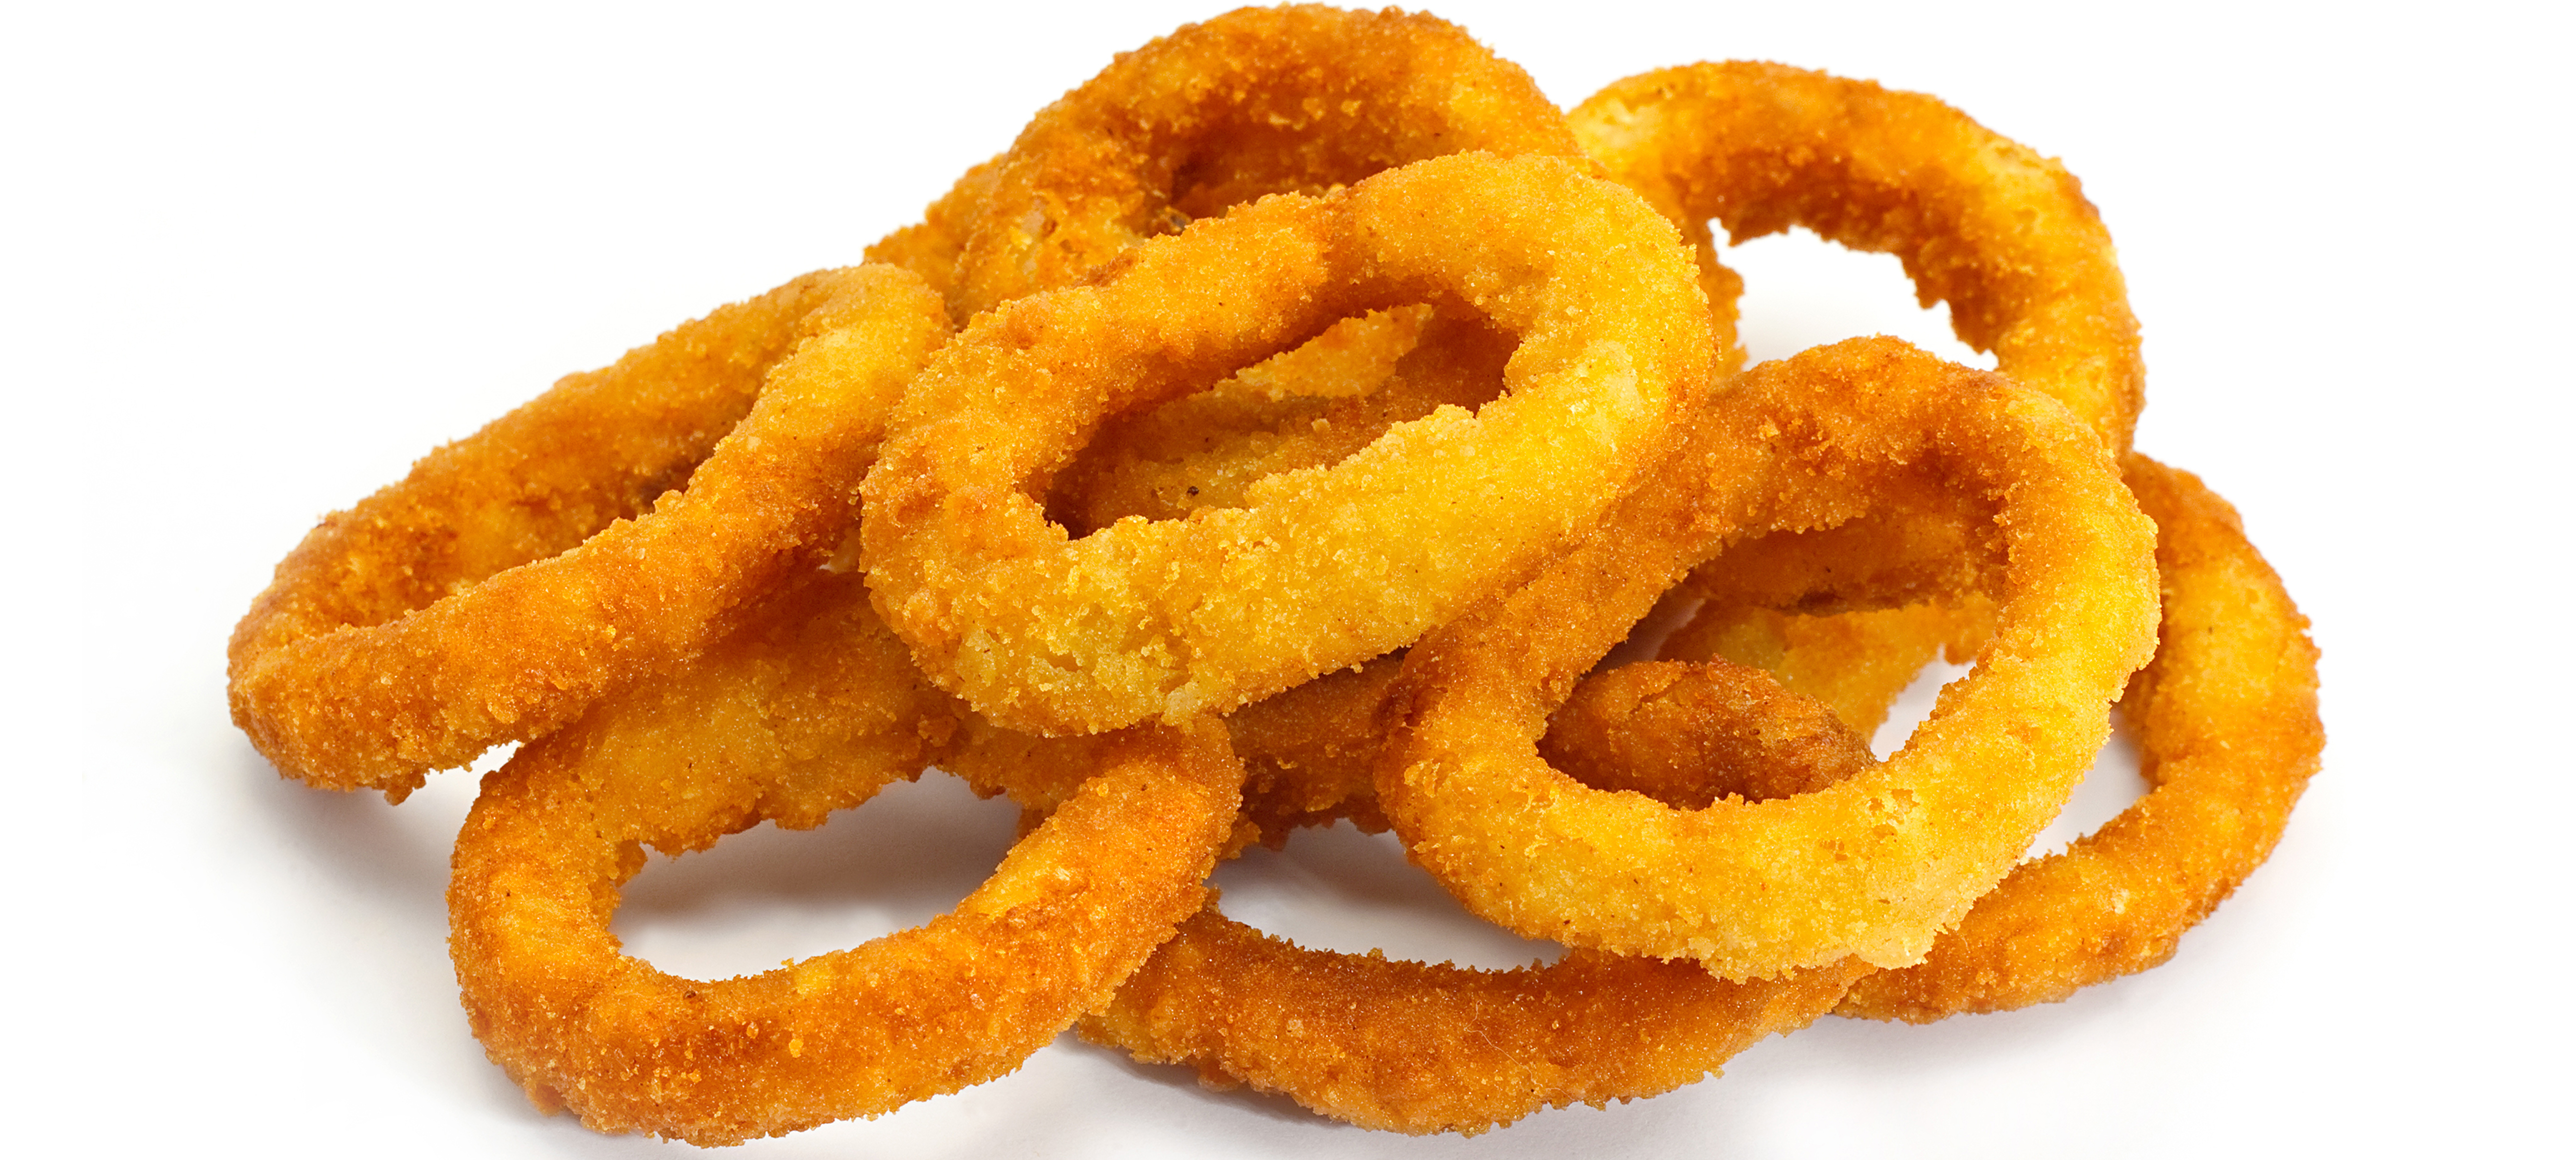 onion rings barbecue buttermilk onion rings oven fried onion rings ...